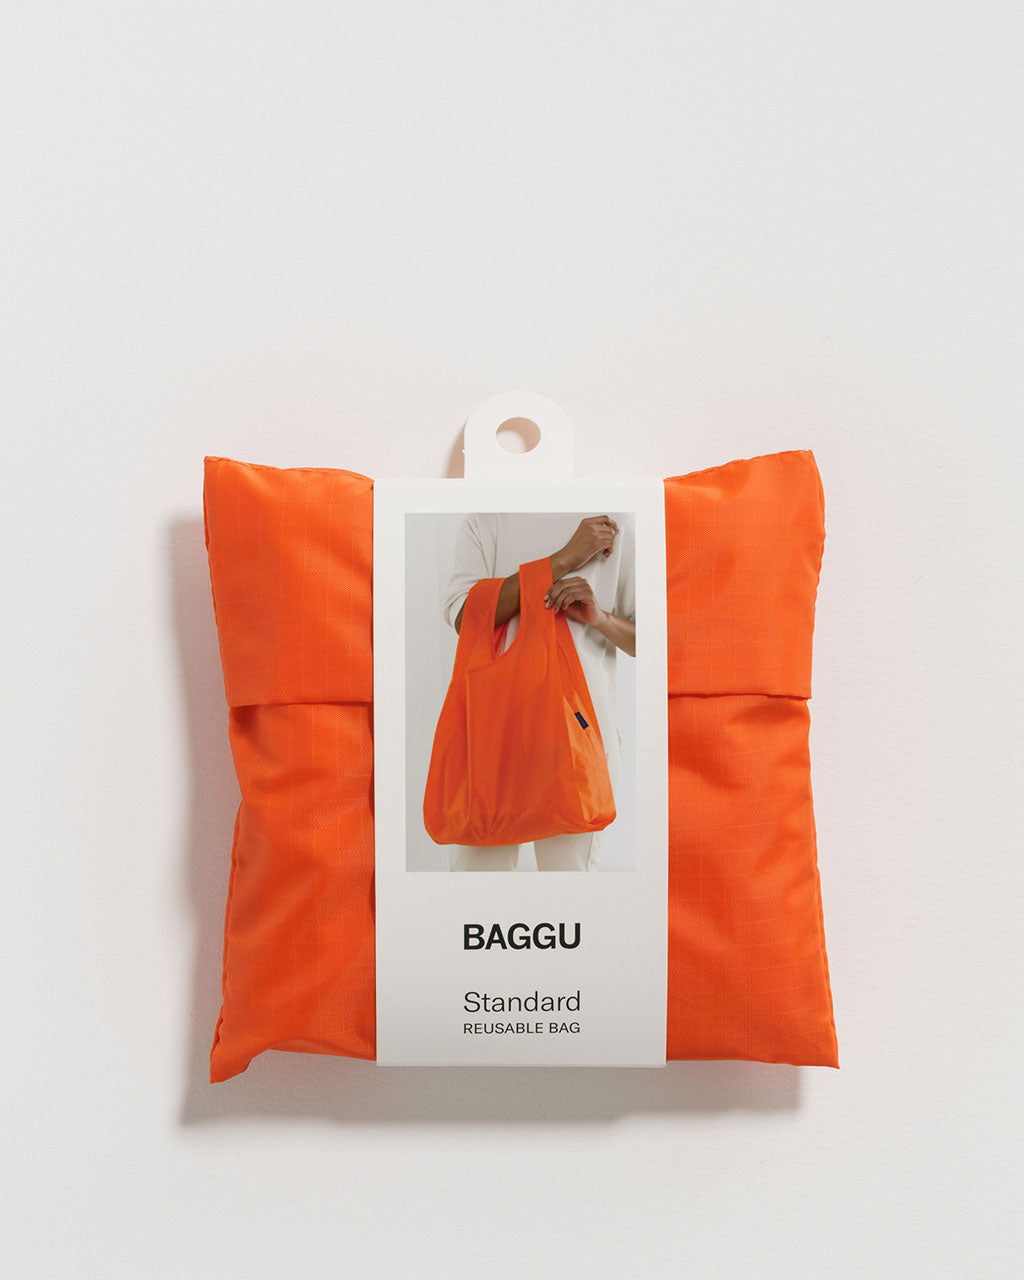 orange baggu shown in packaging